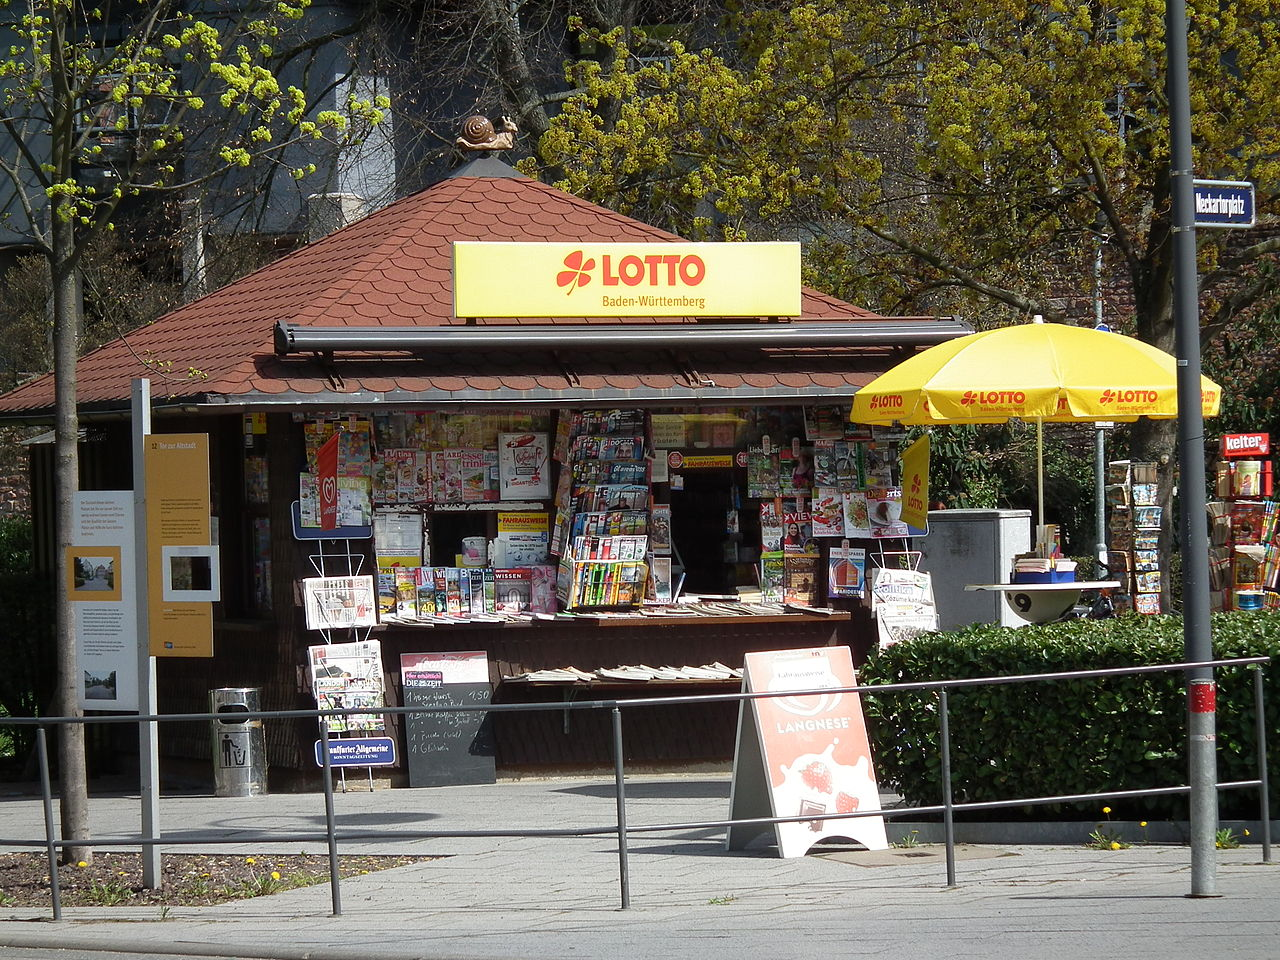 Kiosk in Ladenburg.JPG